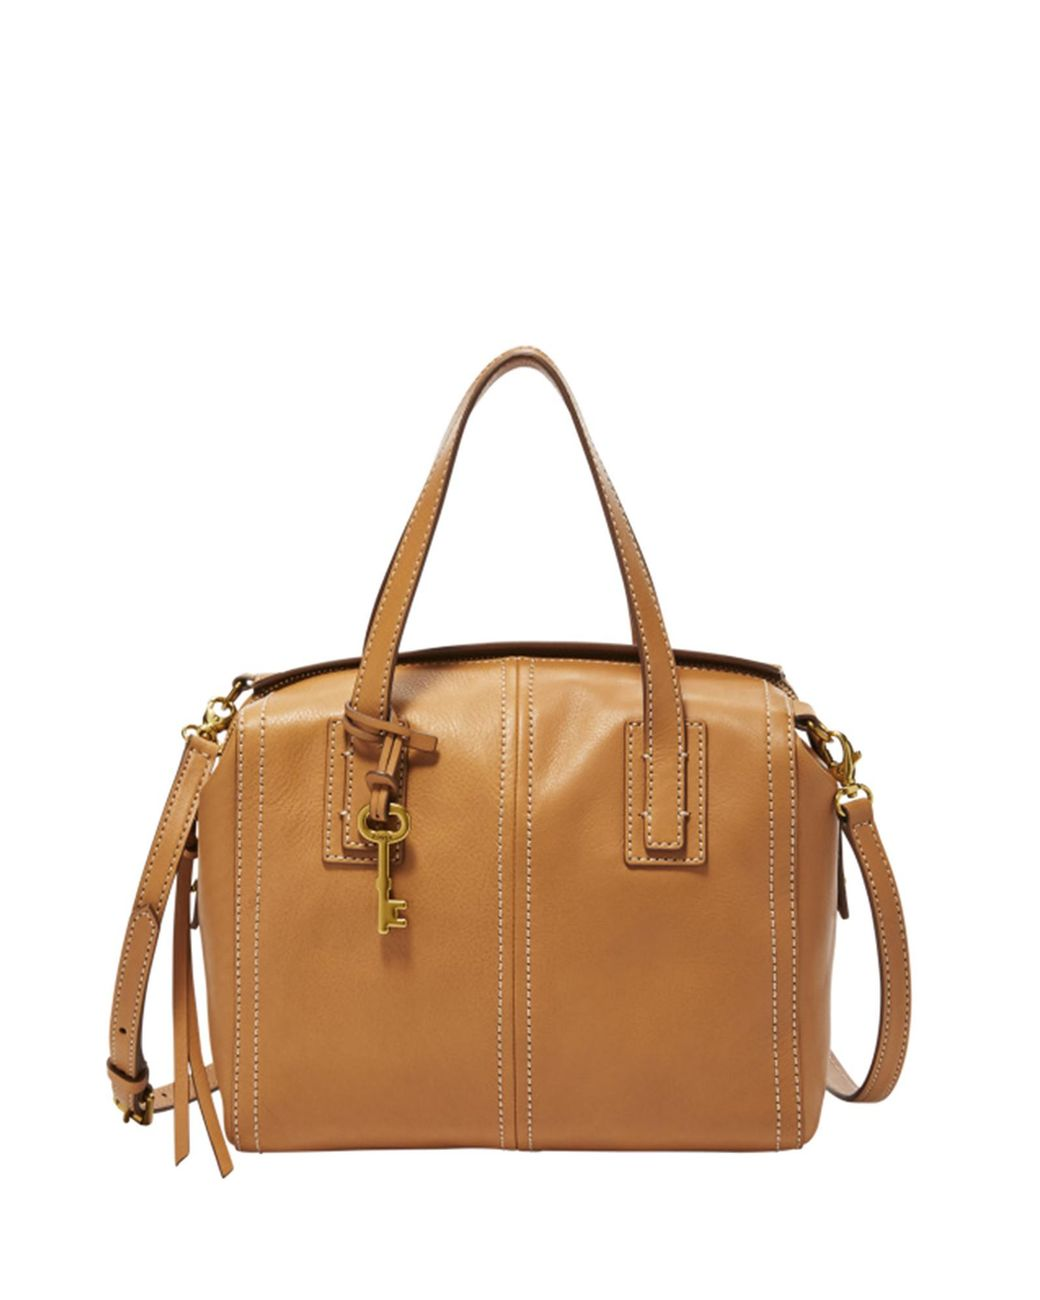 60c72738a Fossil Zb6847231 in Brown - Lyst